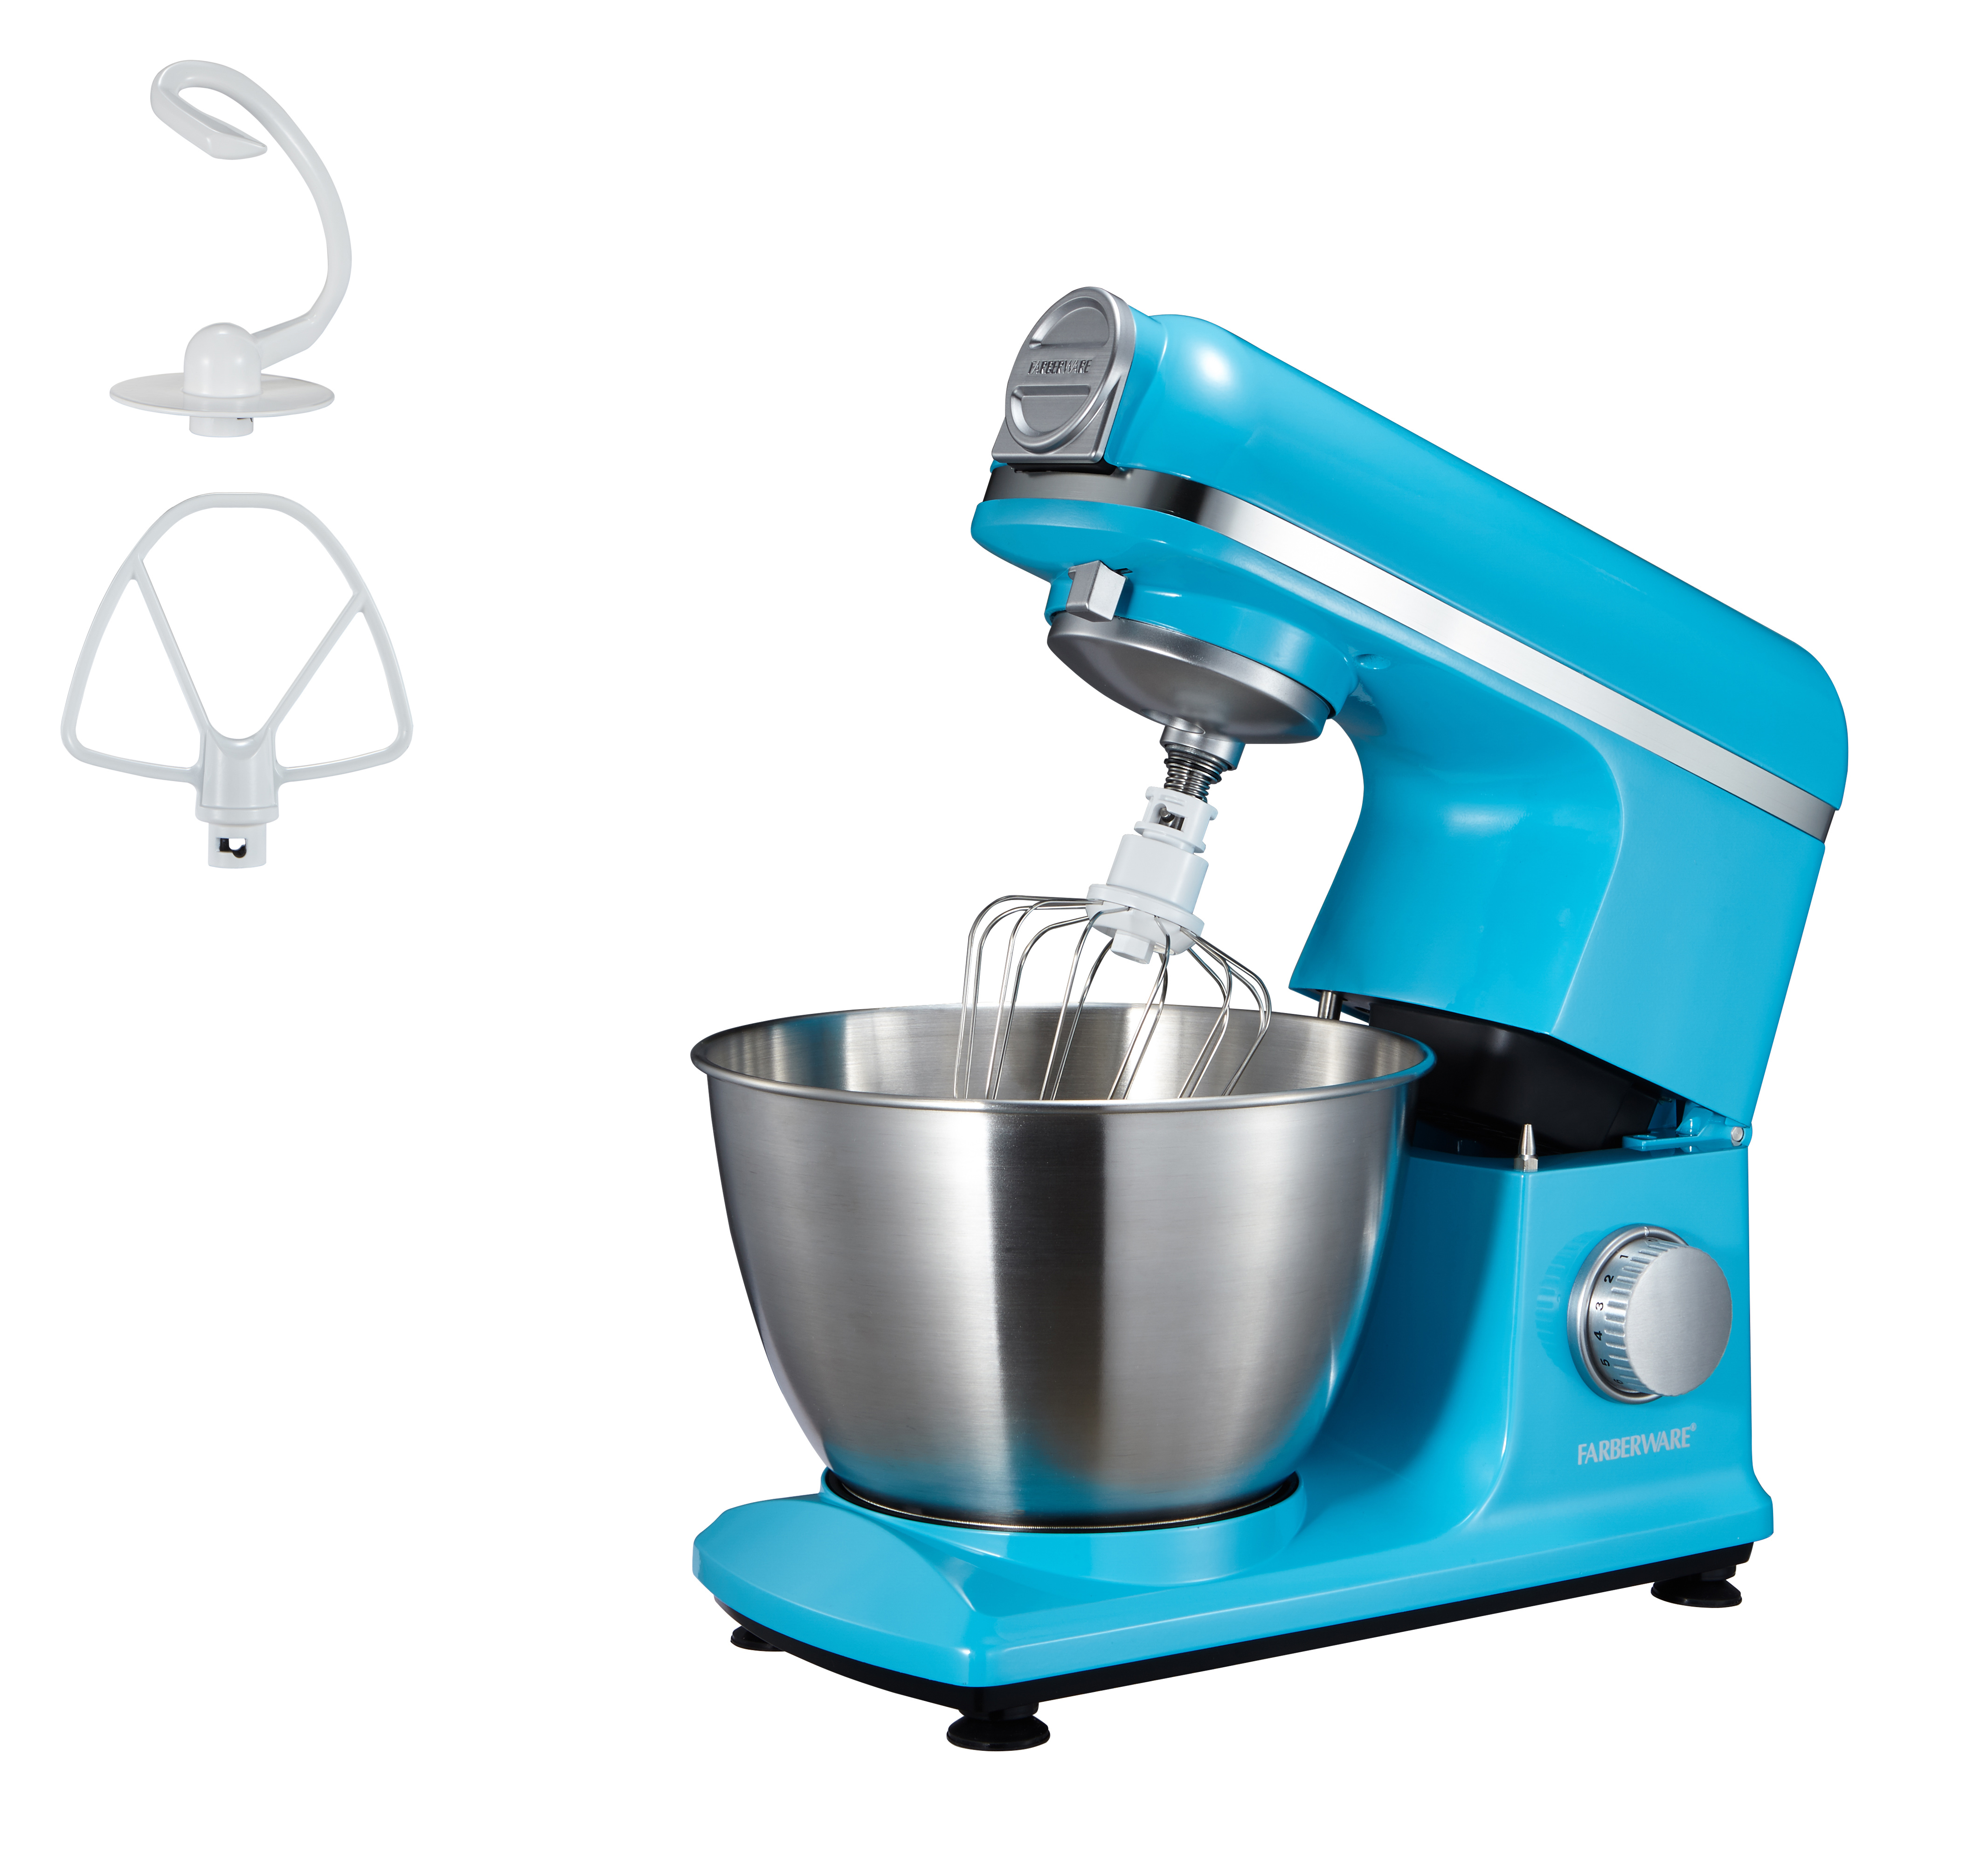 Stand Mixer Farberware 4.7 Quart Color Teal Stainless Steel Bowl ...